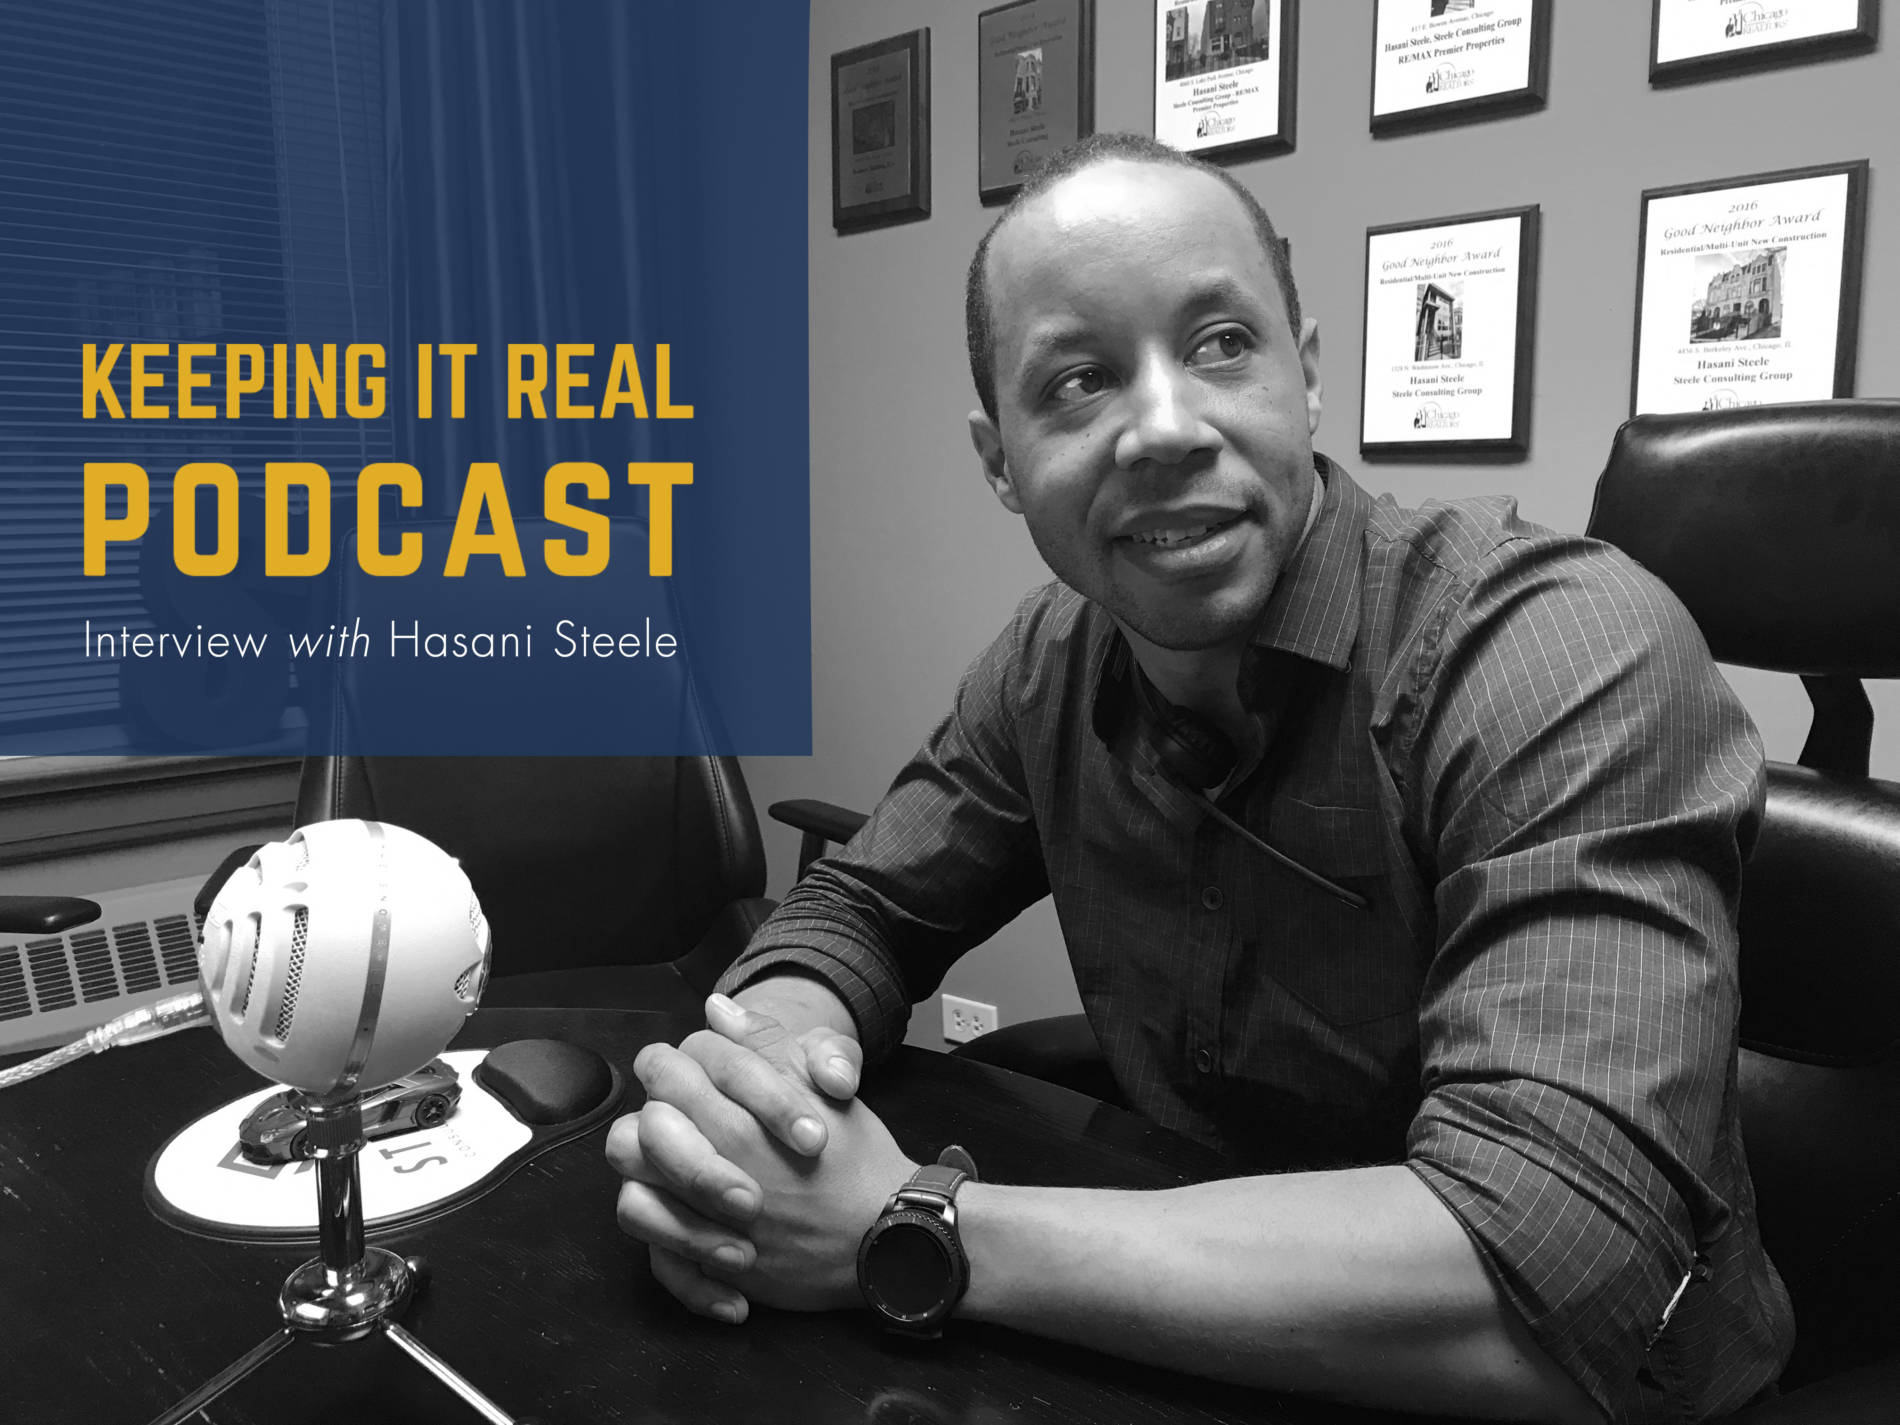 Keeping It Real Podcast with Hasani